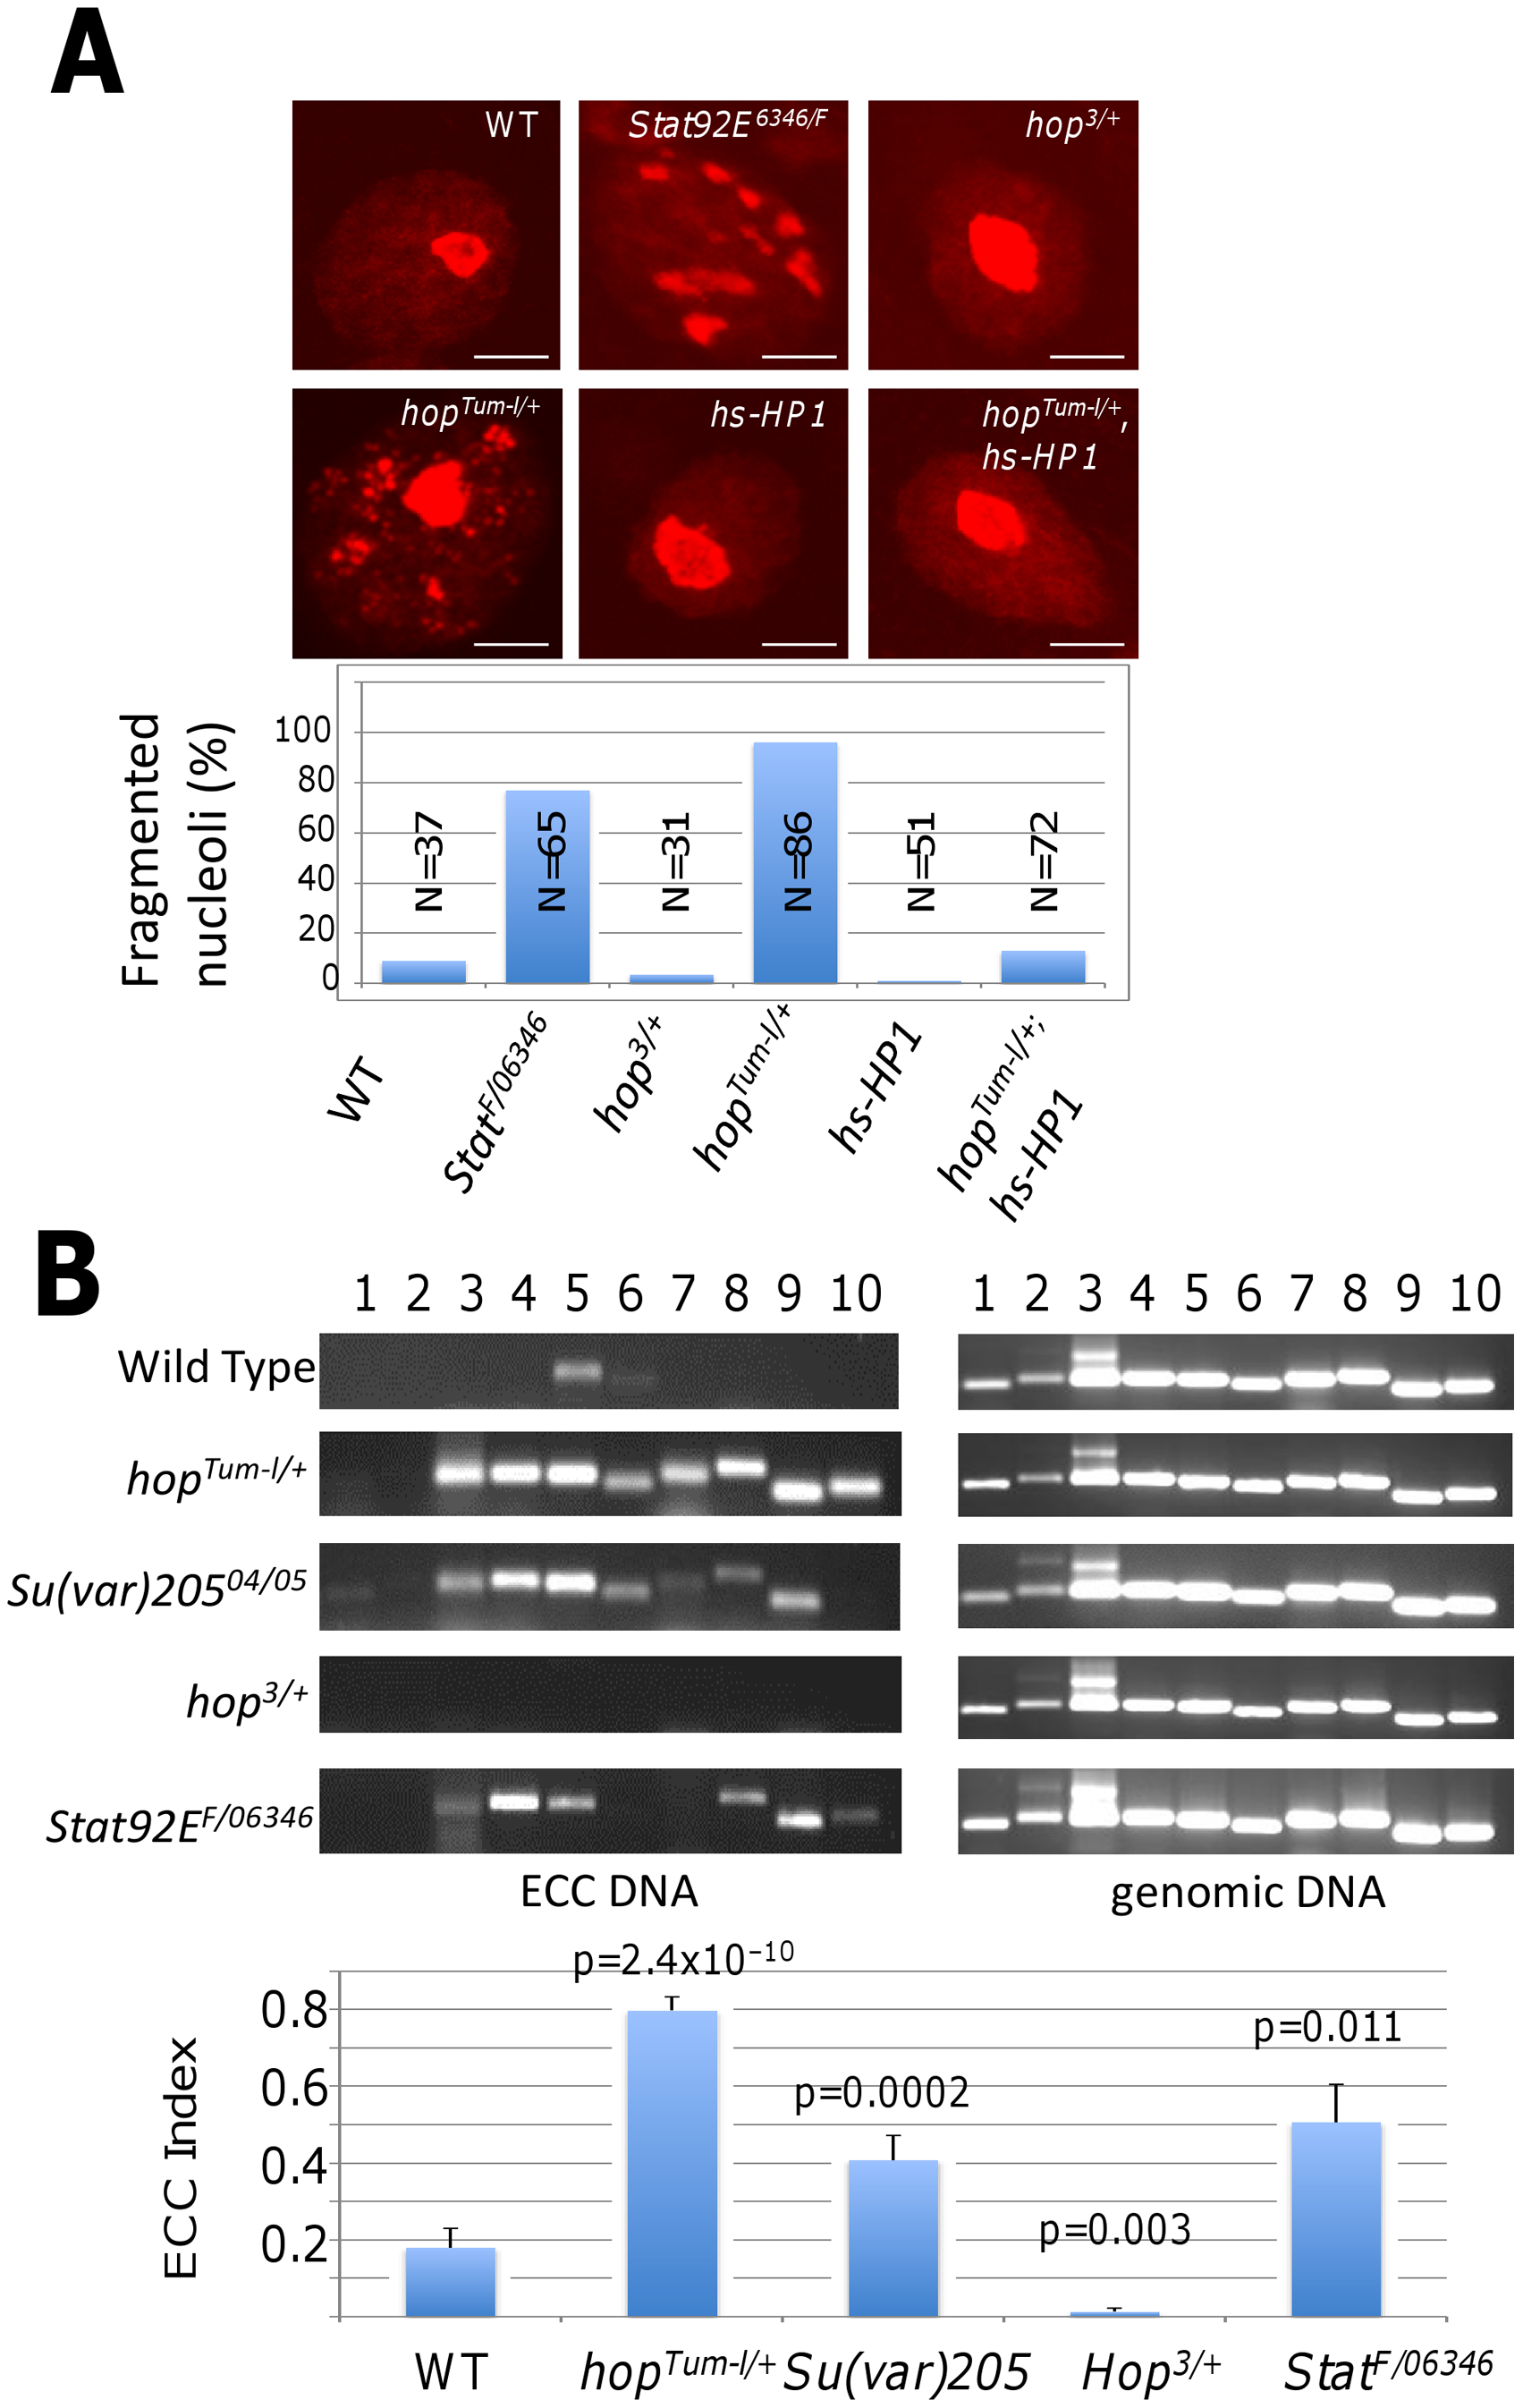 Heterochromatin affects stability of the nucleolus and rDNA locus.